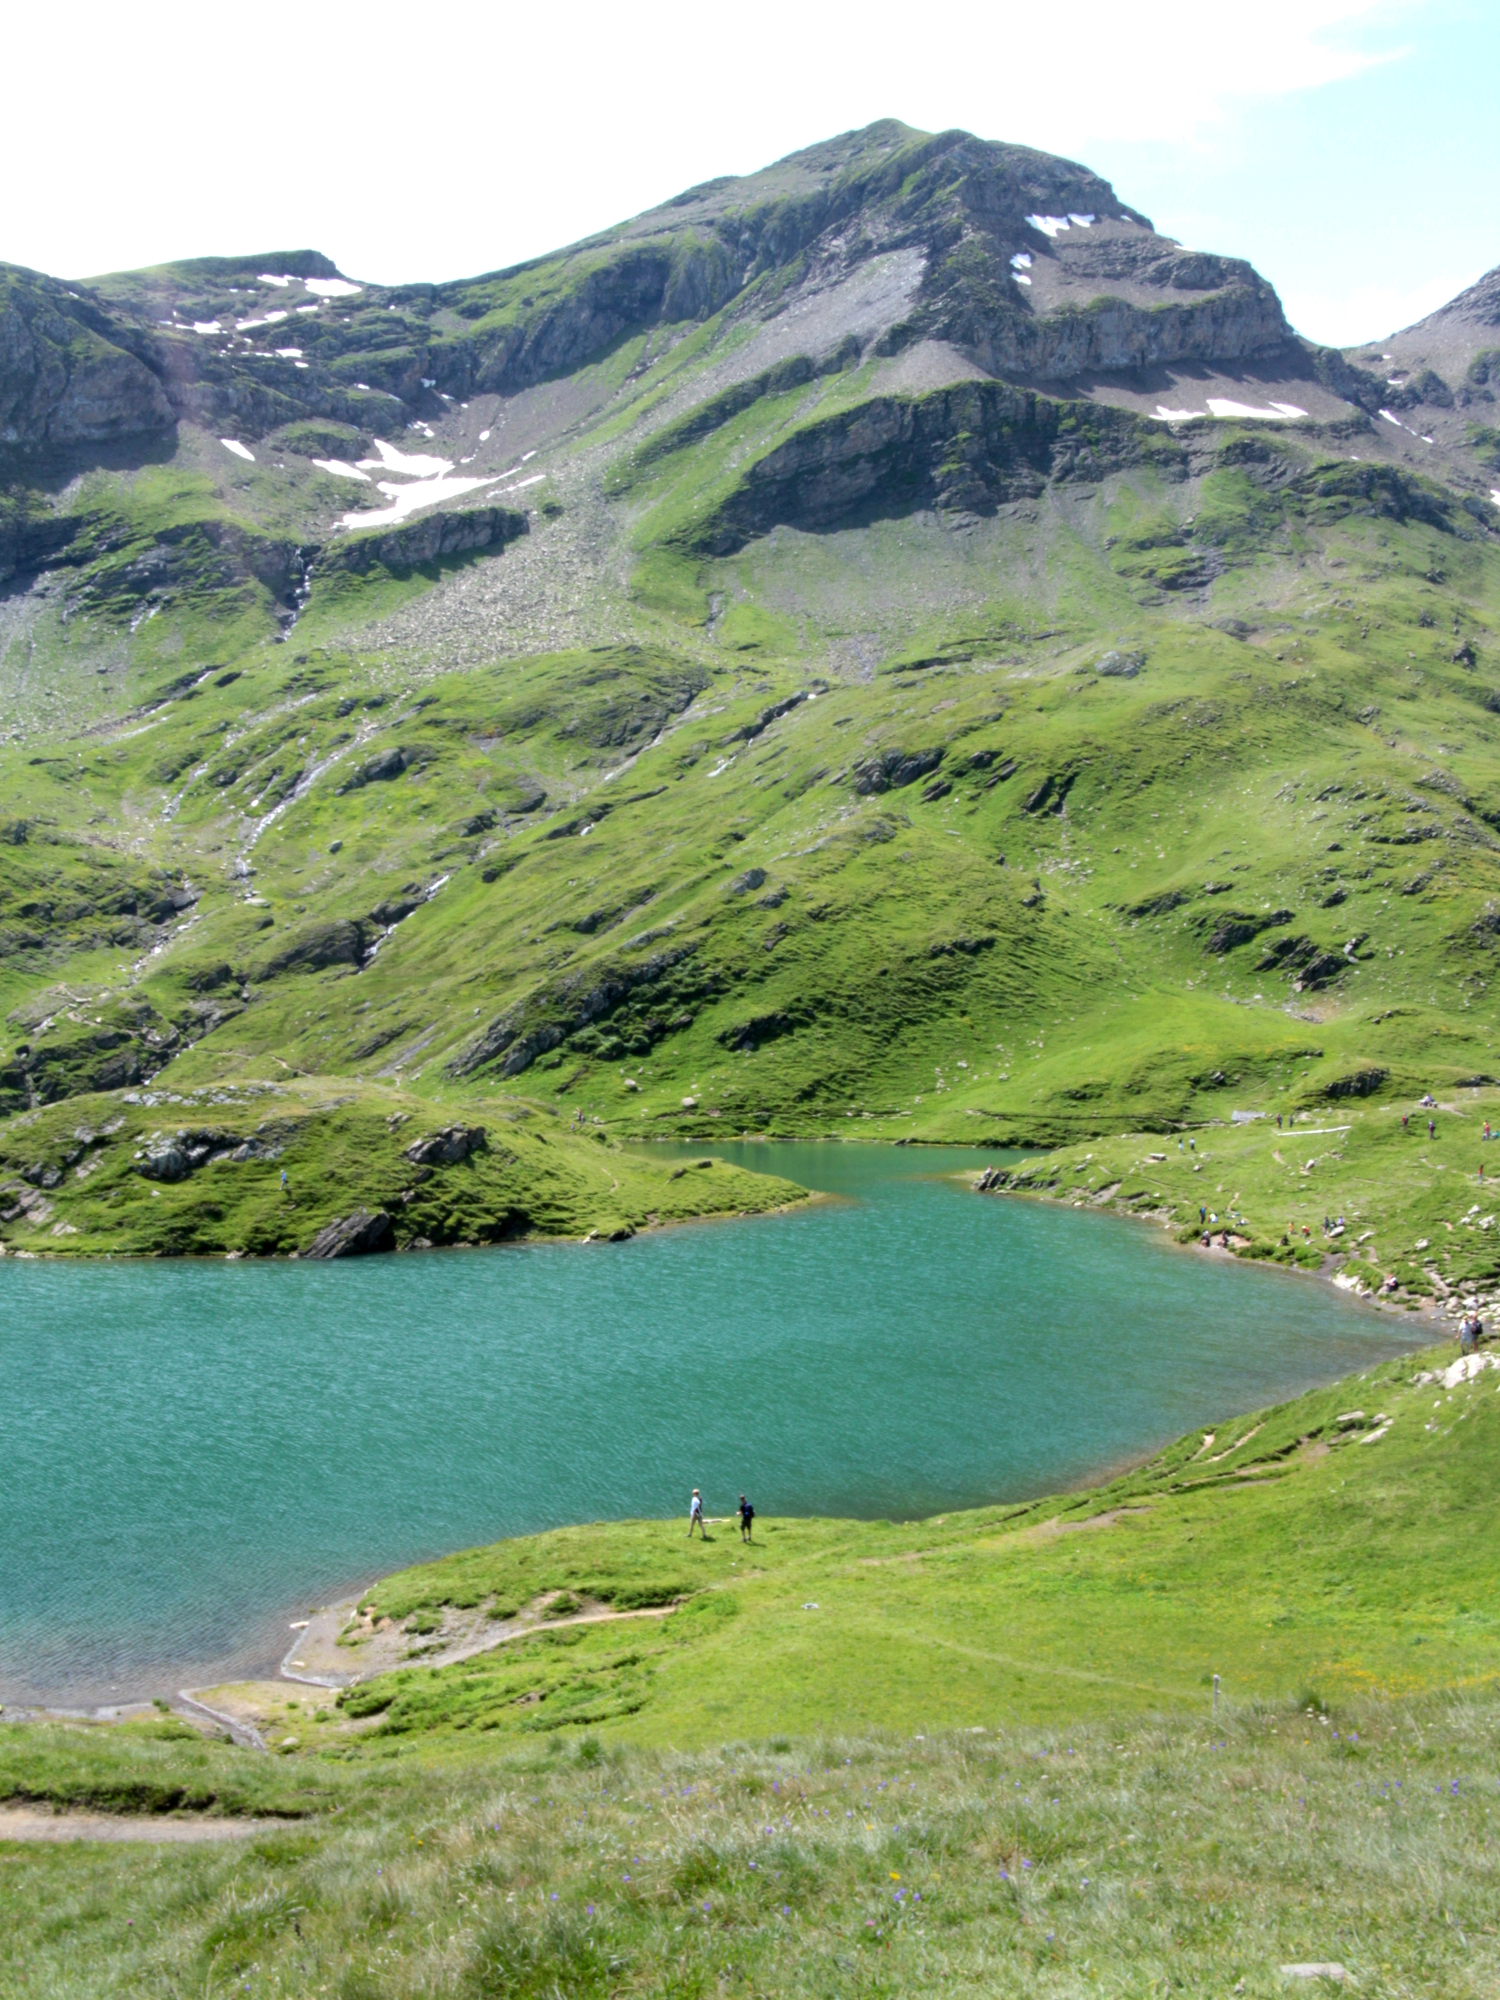 Stunning Bachalpsee, a high alpine lake above Grindelwald in the Bernese Oberland